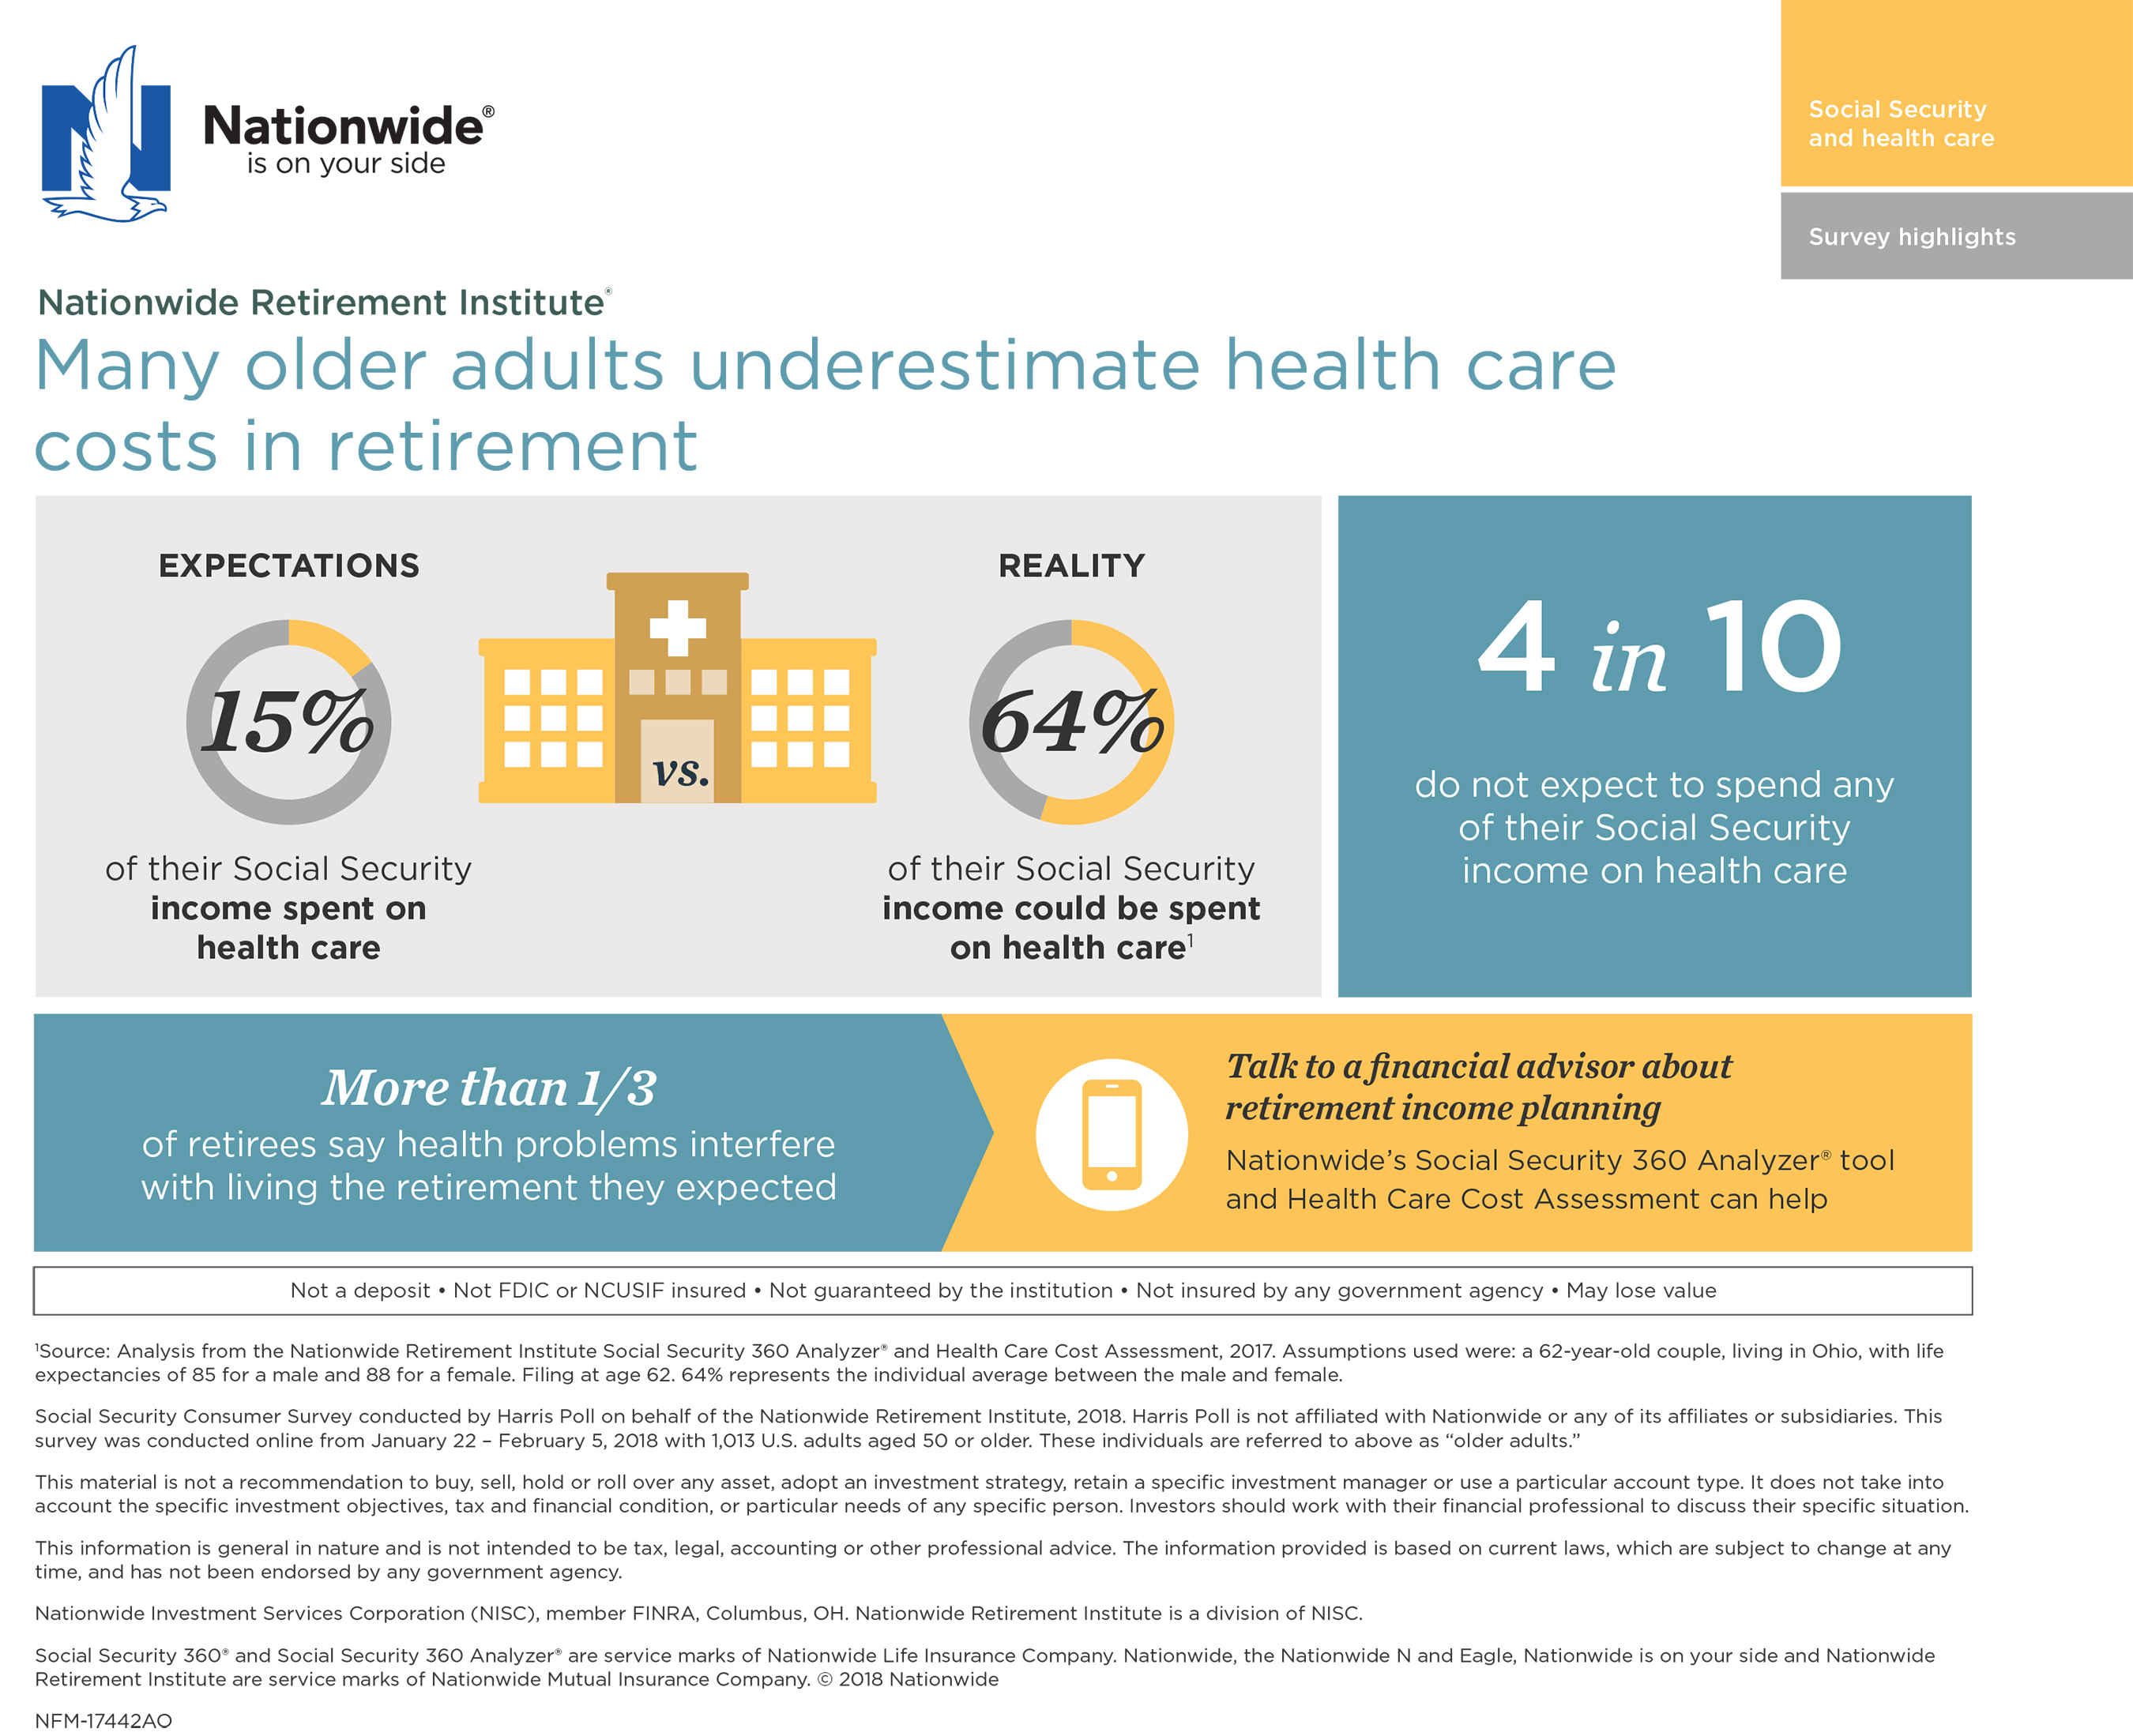 Many older adults underestimate health care costs in retirement